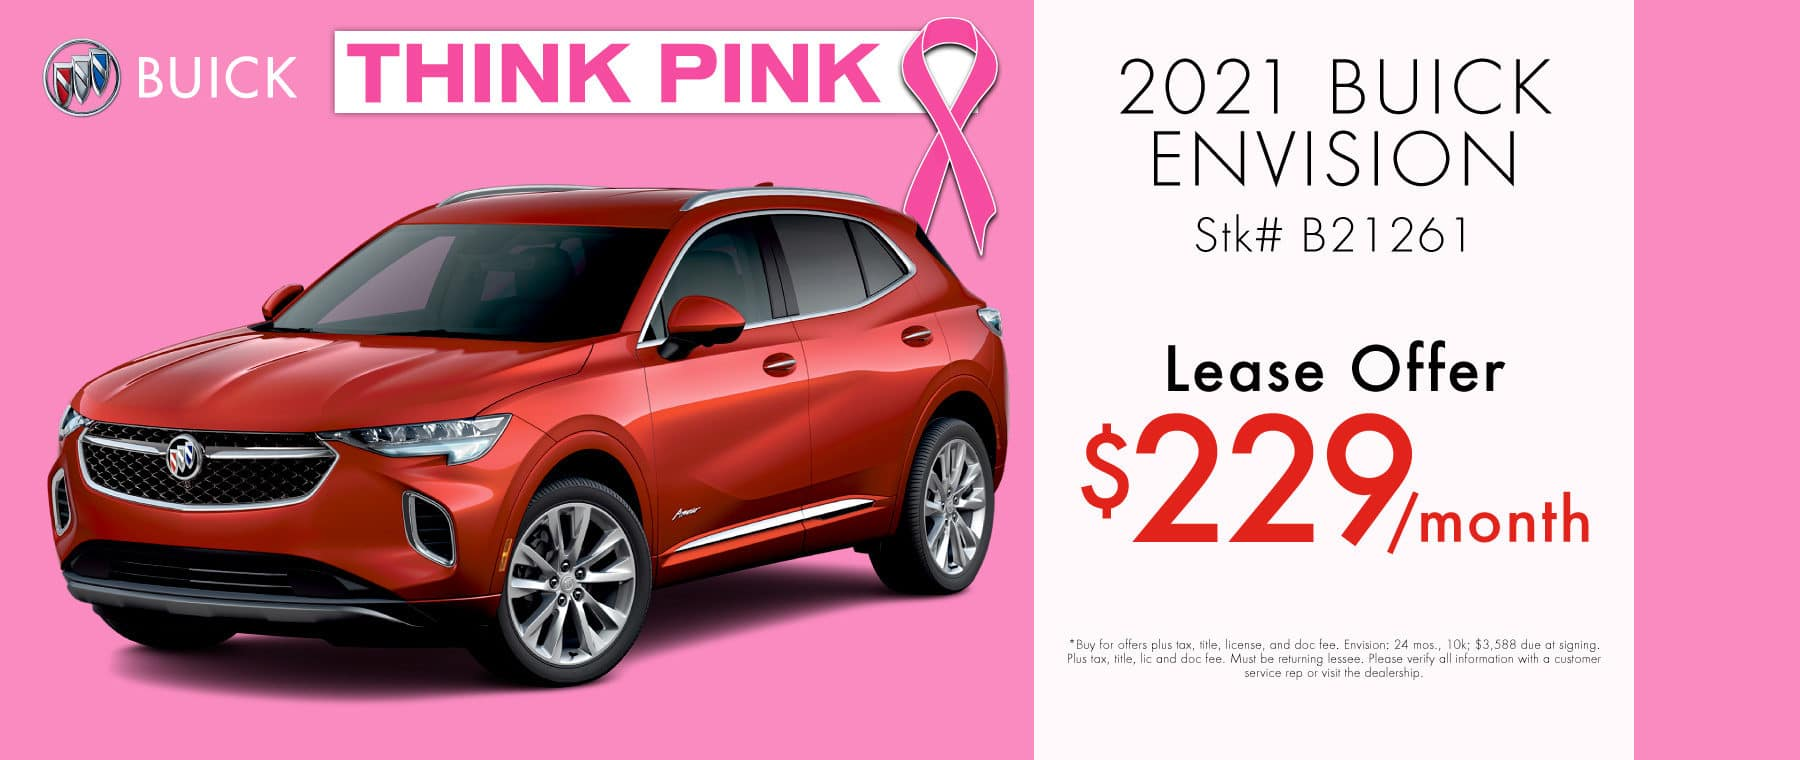 70834-ZCBG_1800x760-ThinkPink_Envision